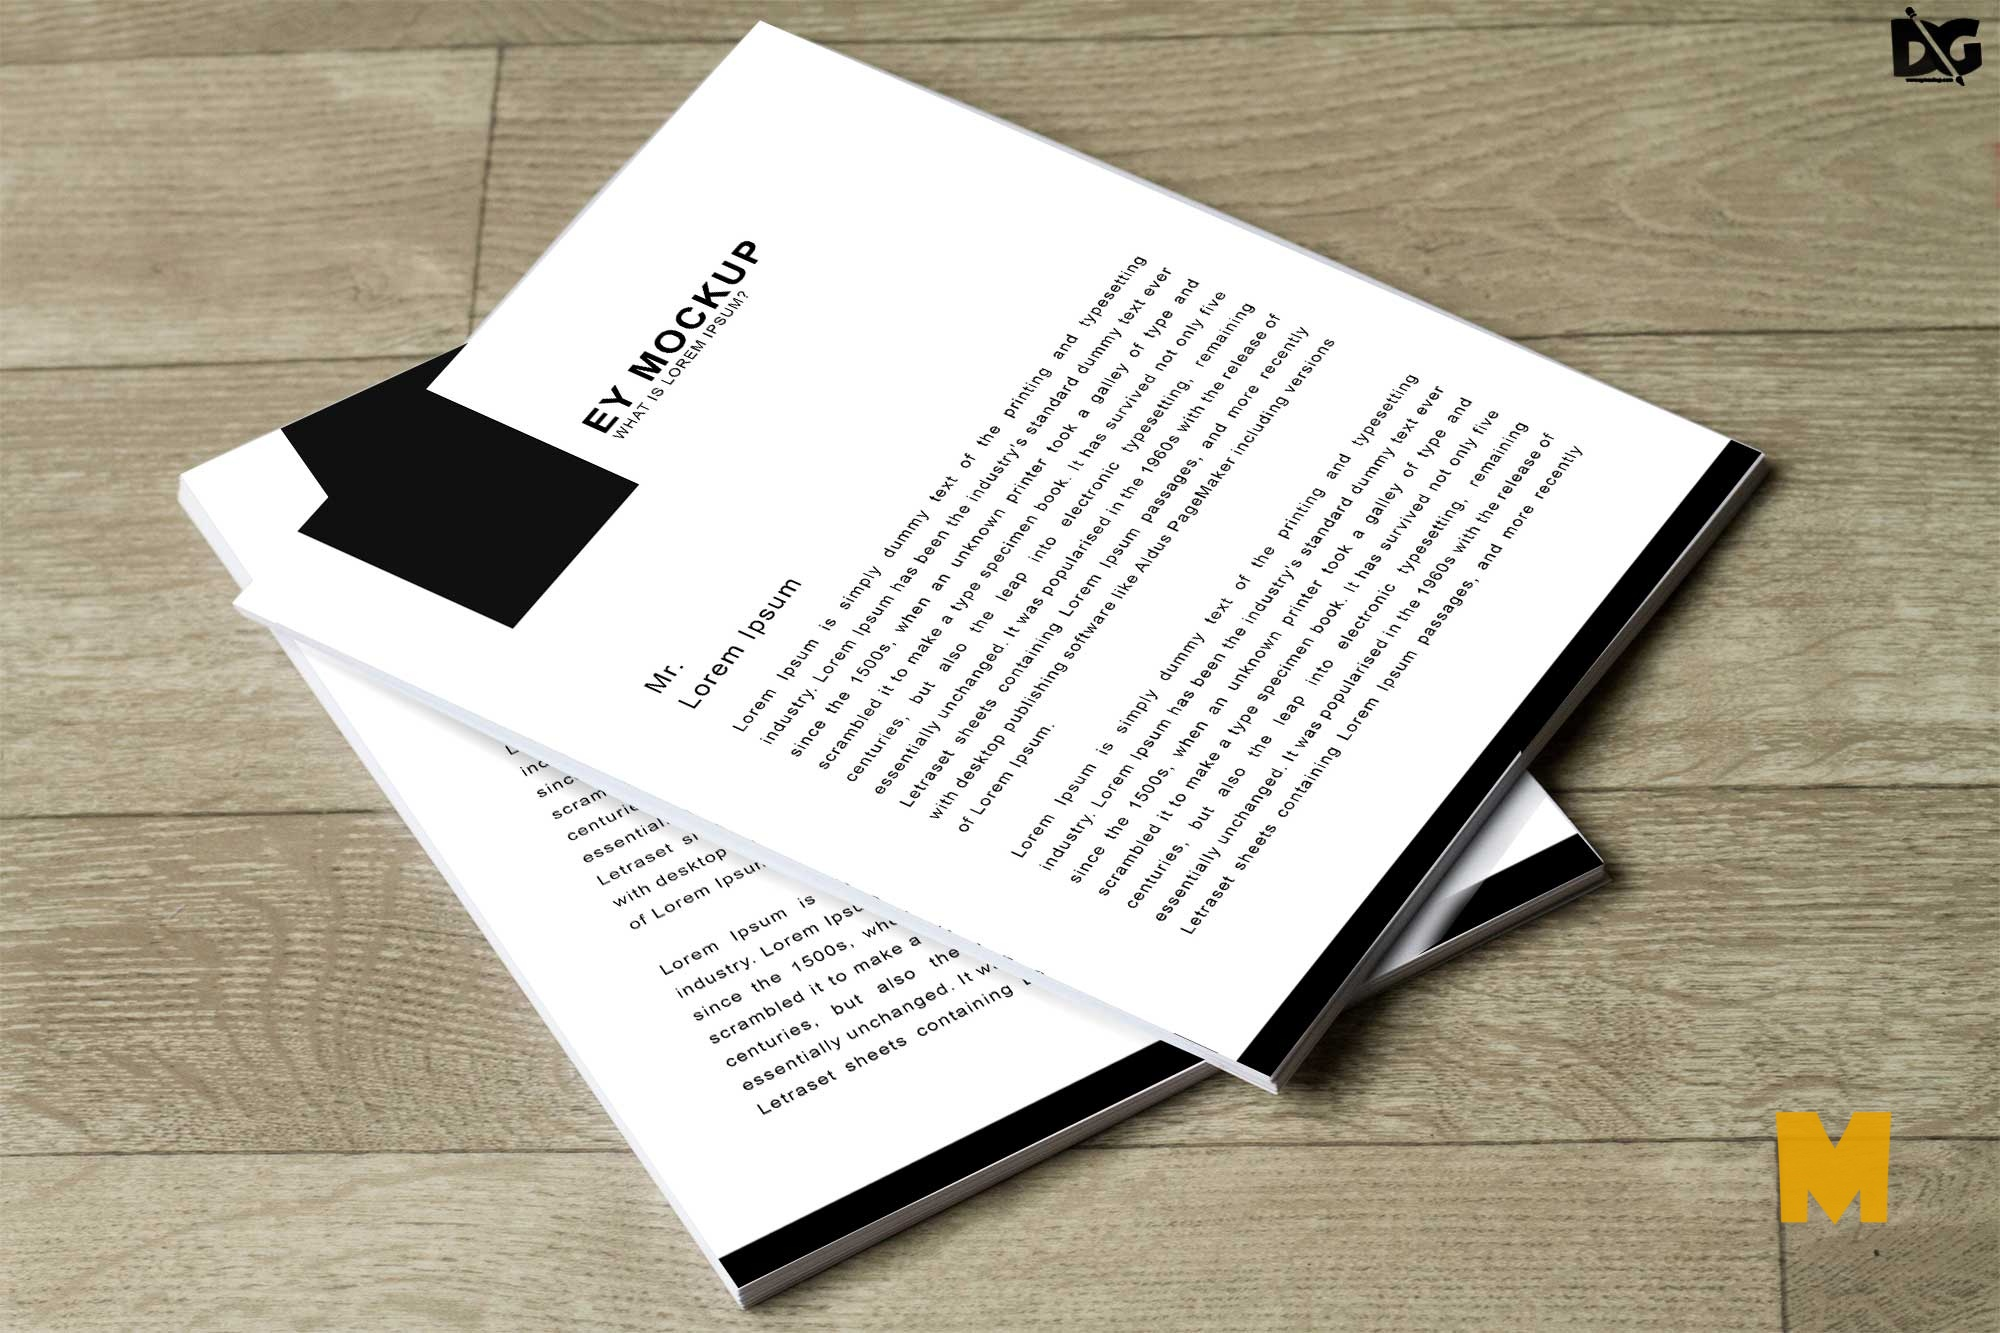 Free Company Letterhead Mockup Download